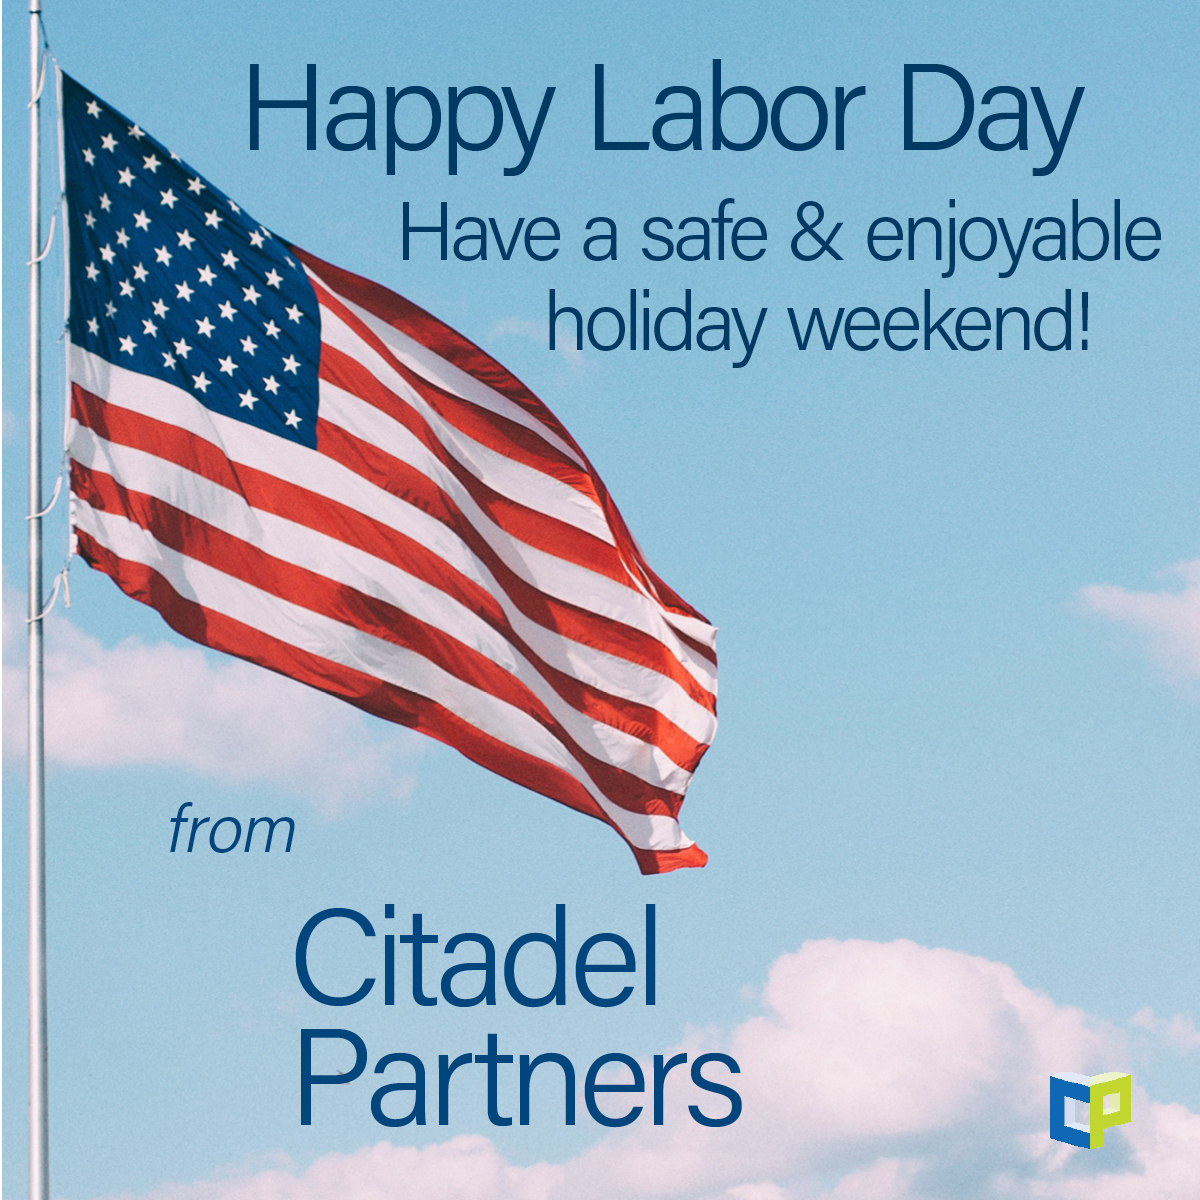 test Twitter Media - Happy Labor Day Weekend! Let's celebrate the great contributions workers have made to the strength, prosperity, and well-being of our country! #CitadelPartners #america #laborday2020 #dallascommercialrealestate #dallastx https://t.co/JTDjlyskd4